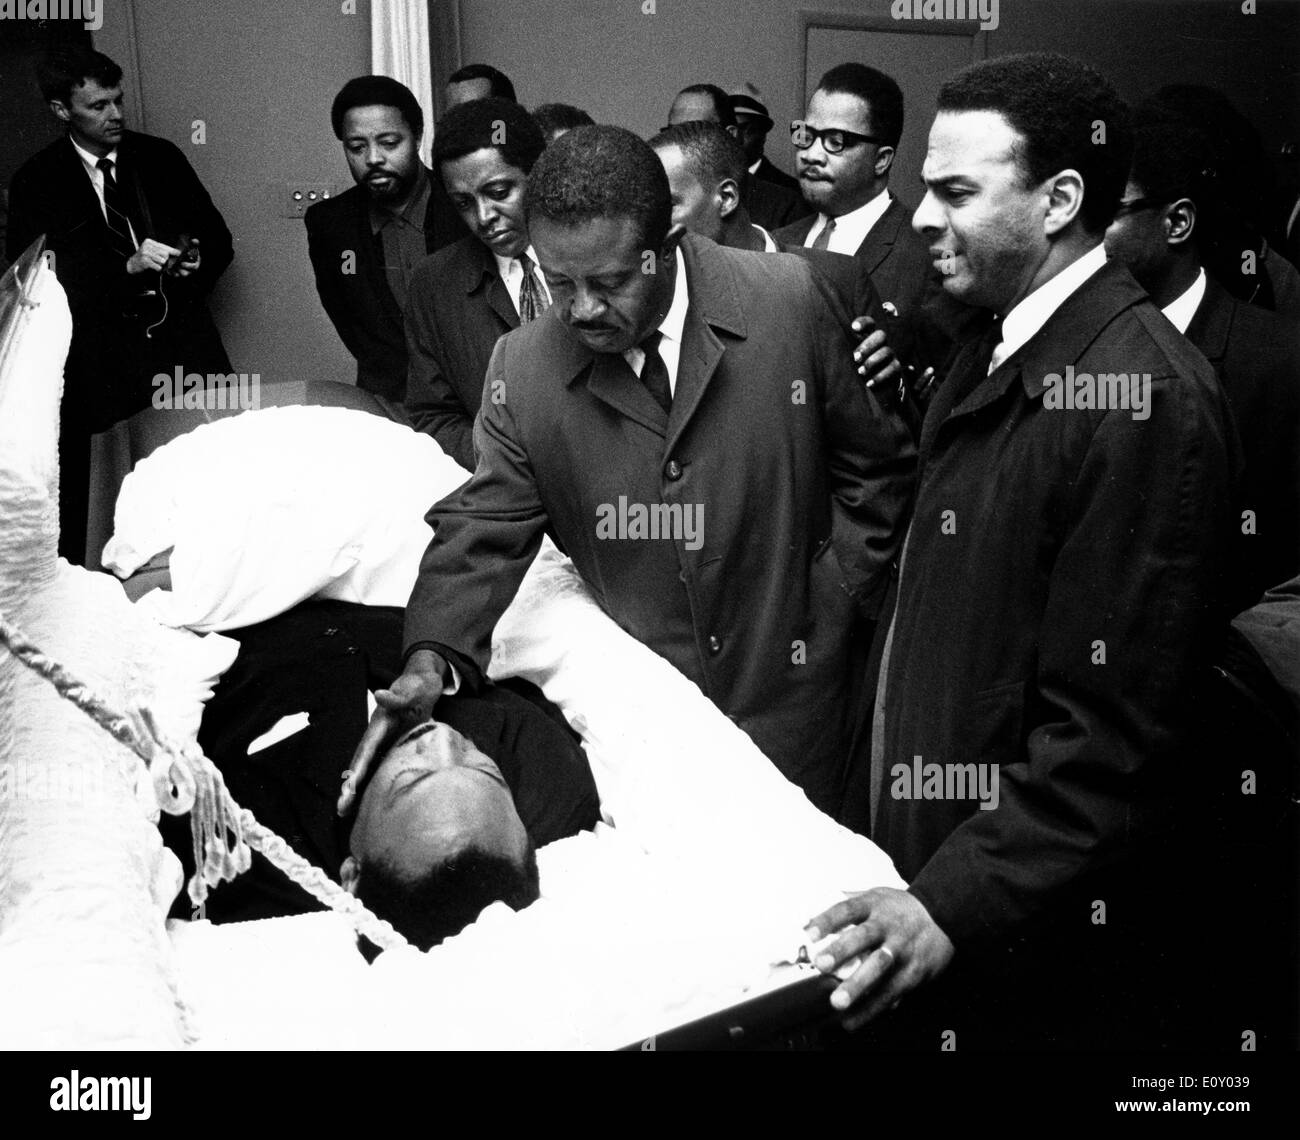 Funeral Of Reverend Martin Luther King Jr Stock Photo Alamy